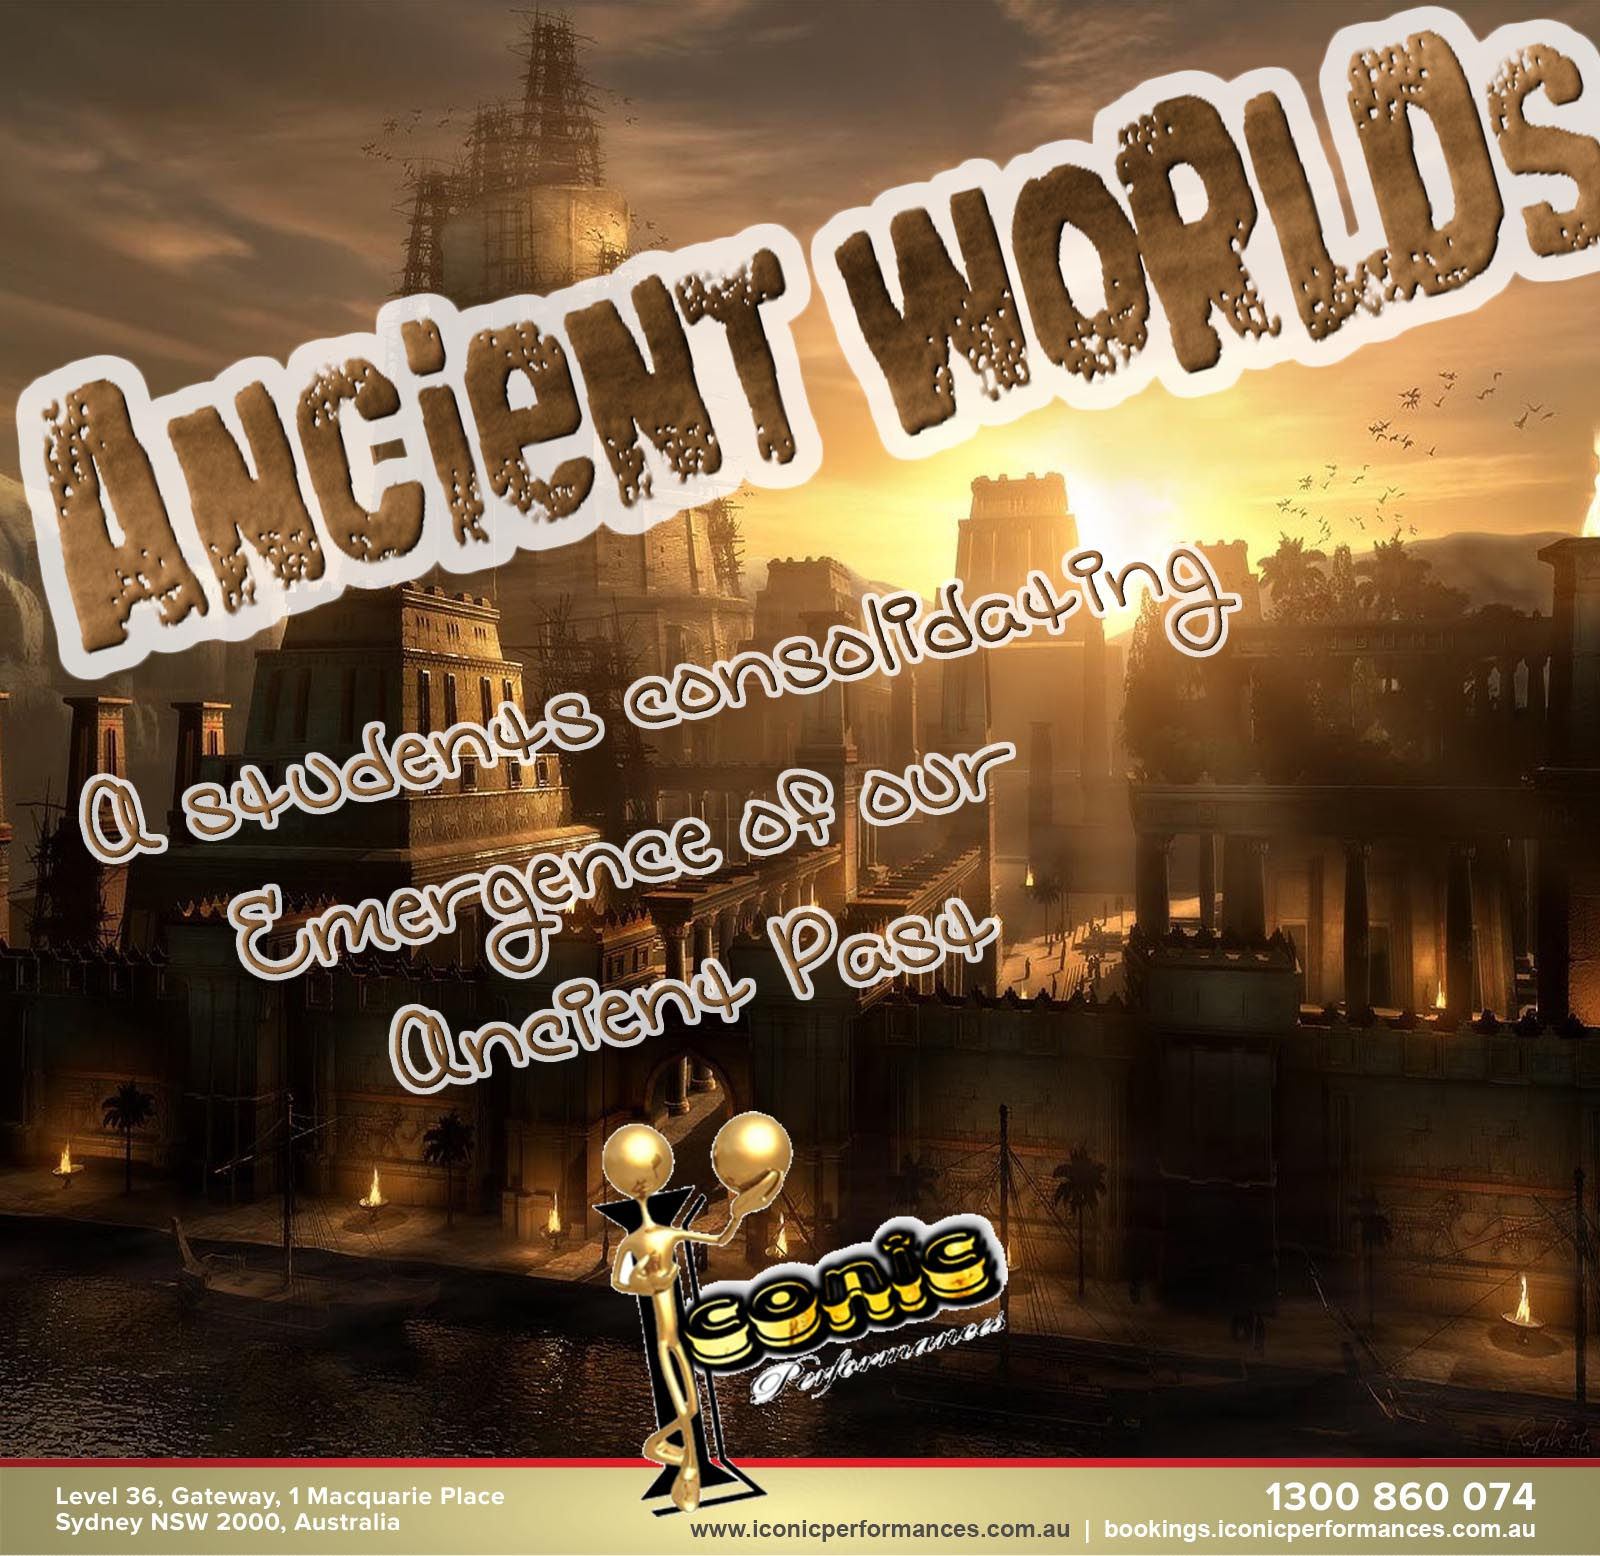 Valley of the Ancient Worlds - A students consolidating Emergence of a History far gone